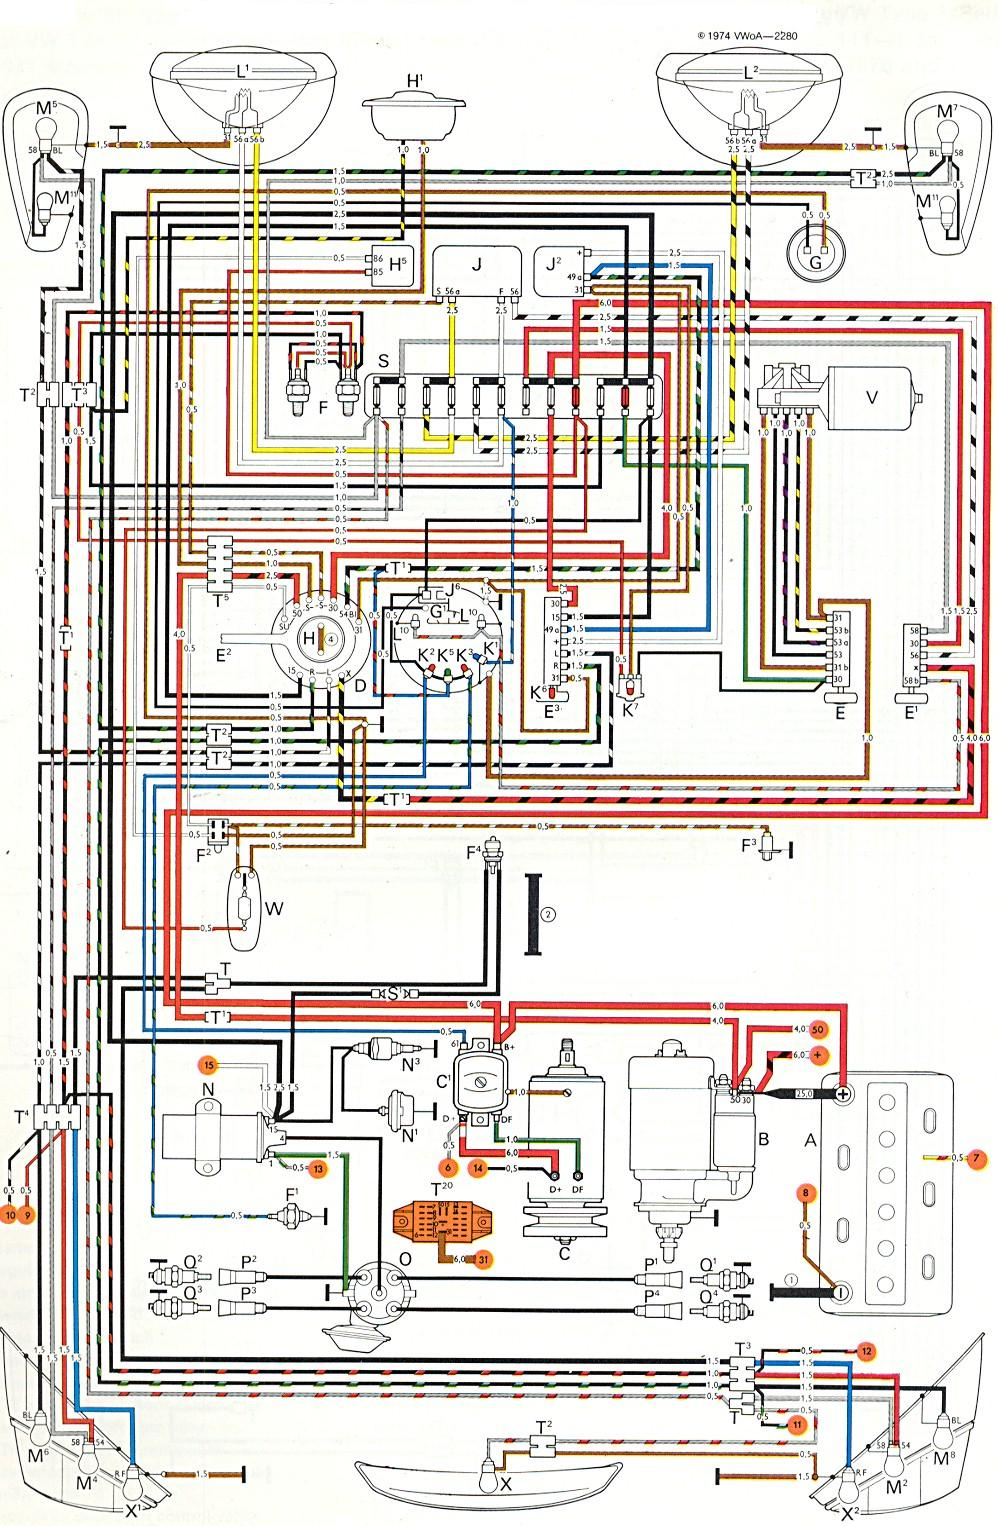 Vw Buggy Wiring Harness Diagram Just Another Blog Dune Basic 74 Diagrams Automotive U2022 Rh Aesar Store Simple